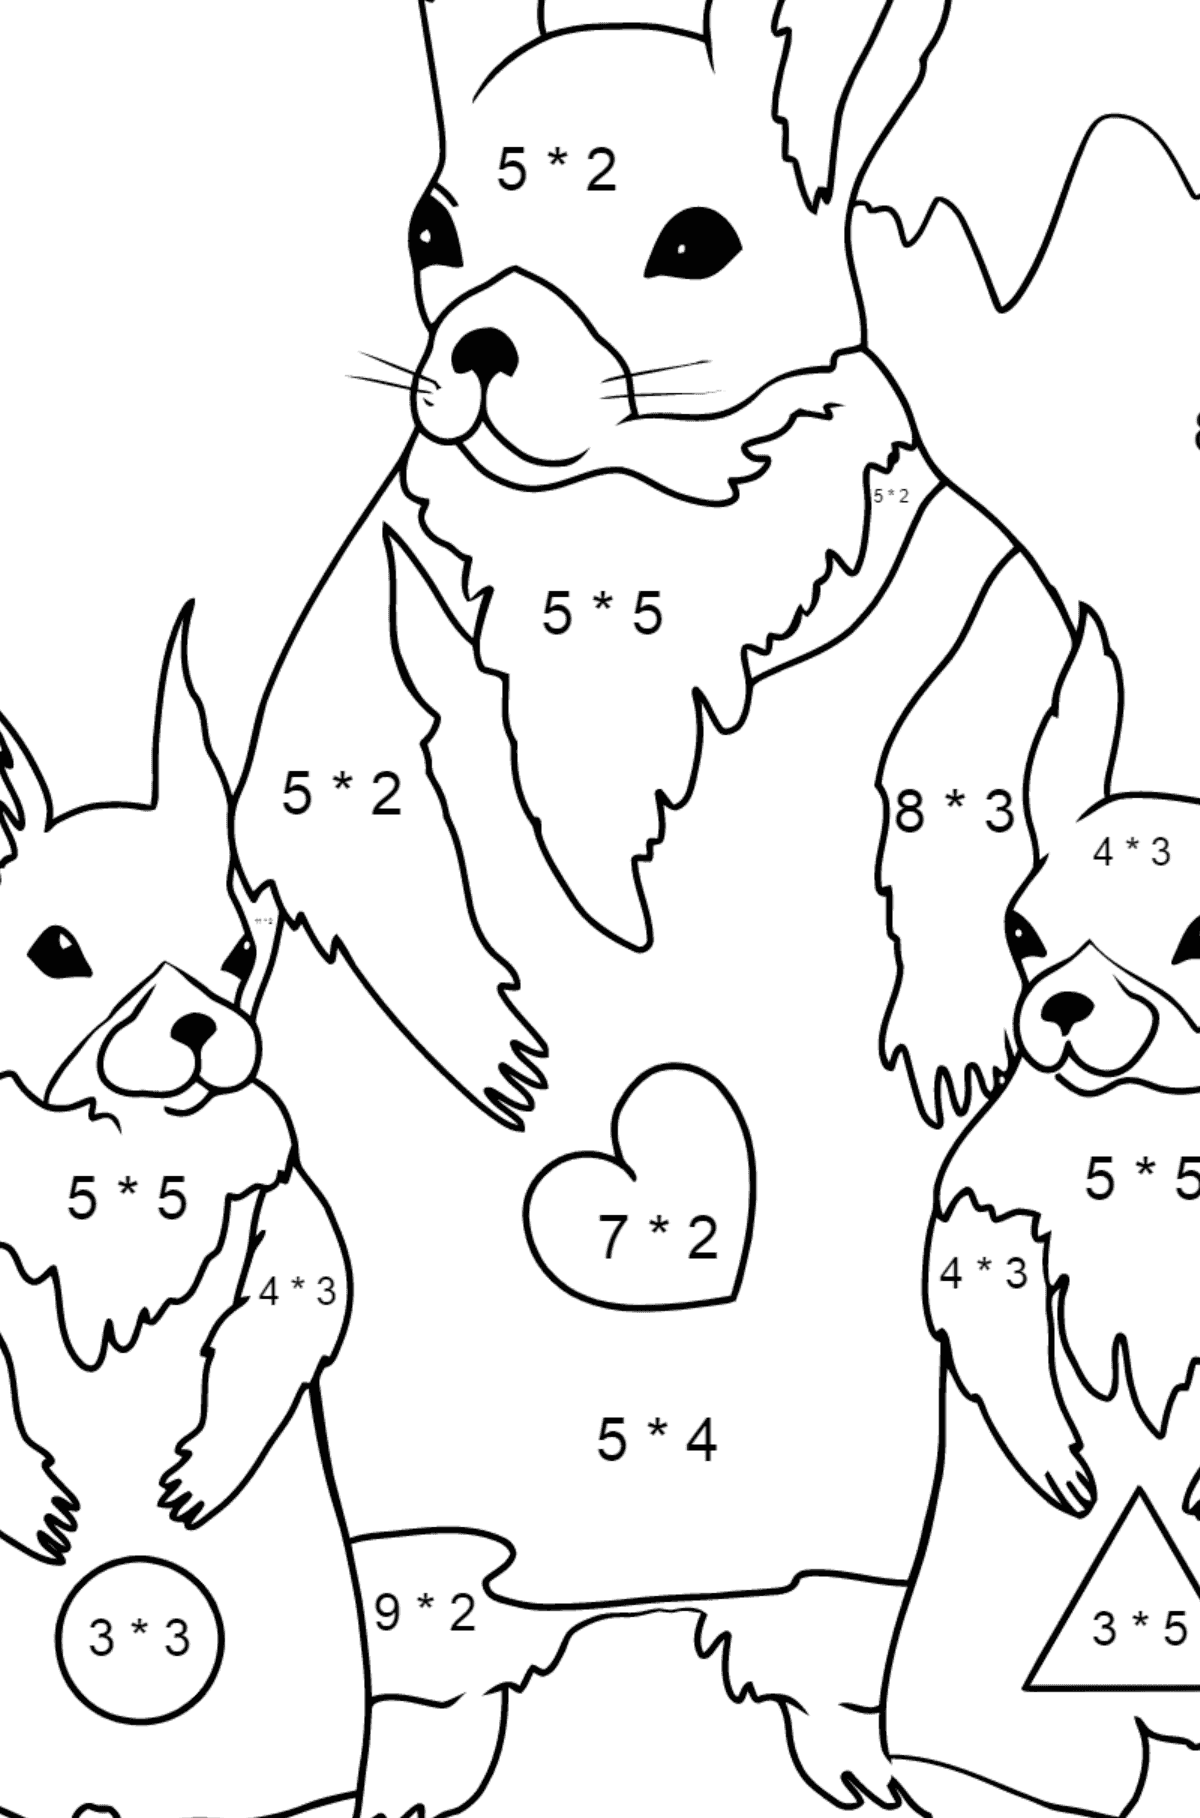 Spring Coloring Page - Beautiful Squirrels for Children  - Color by Number Multiplication